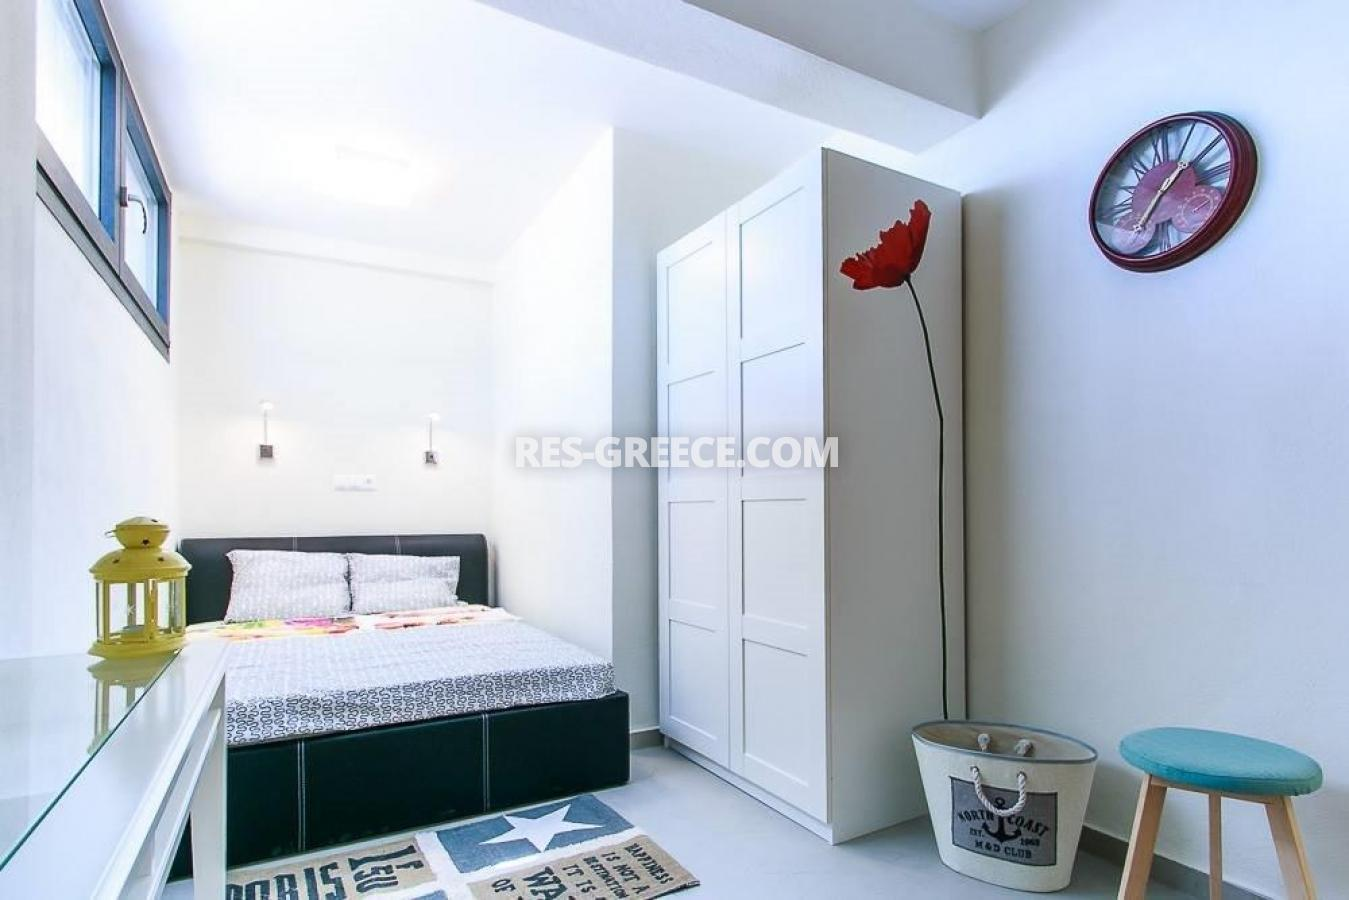 Villa MM, Northern Aegean Islands, Greece - 2 luxury properties in a gated complex with private beach - Photo 5